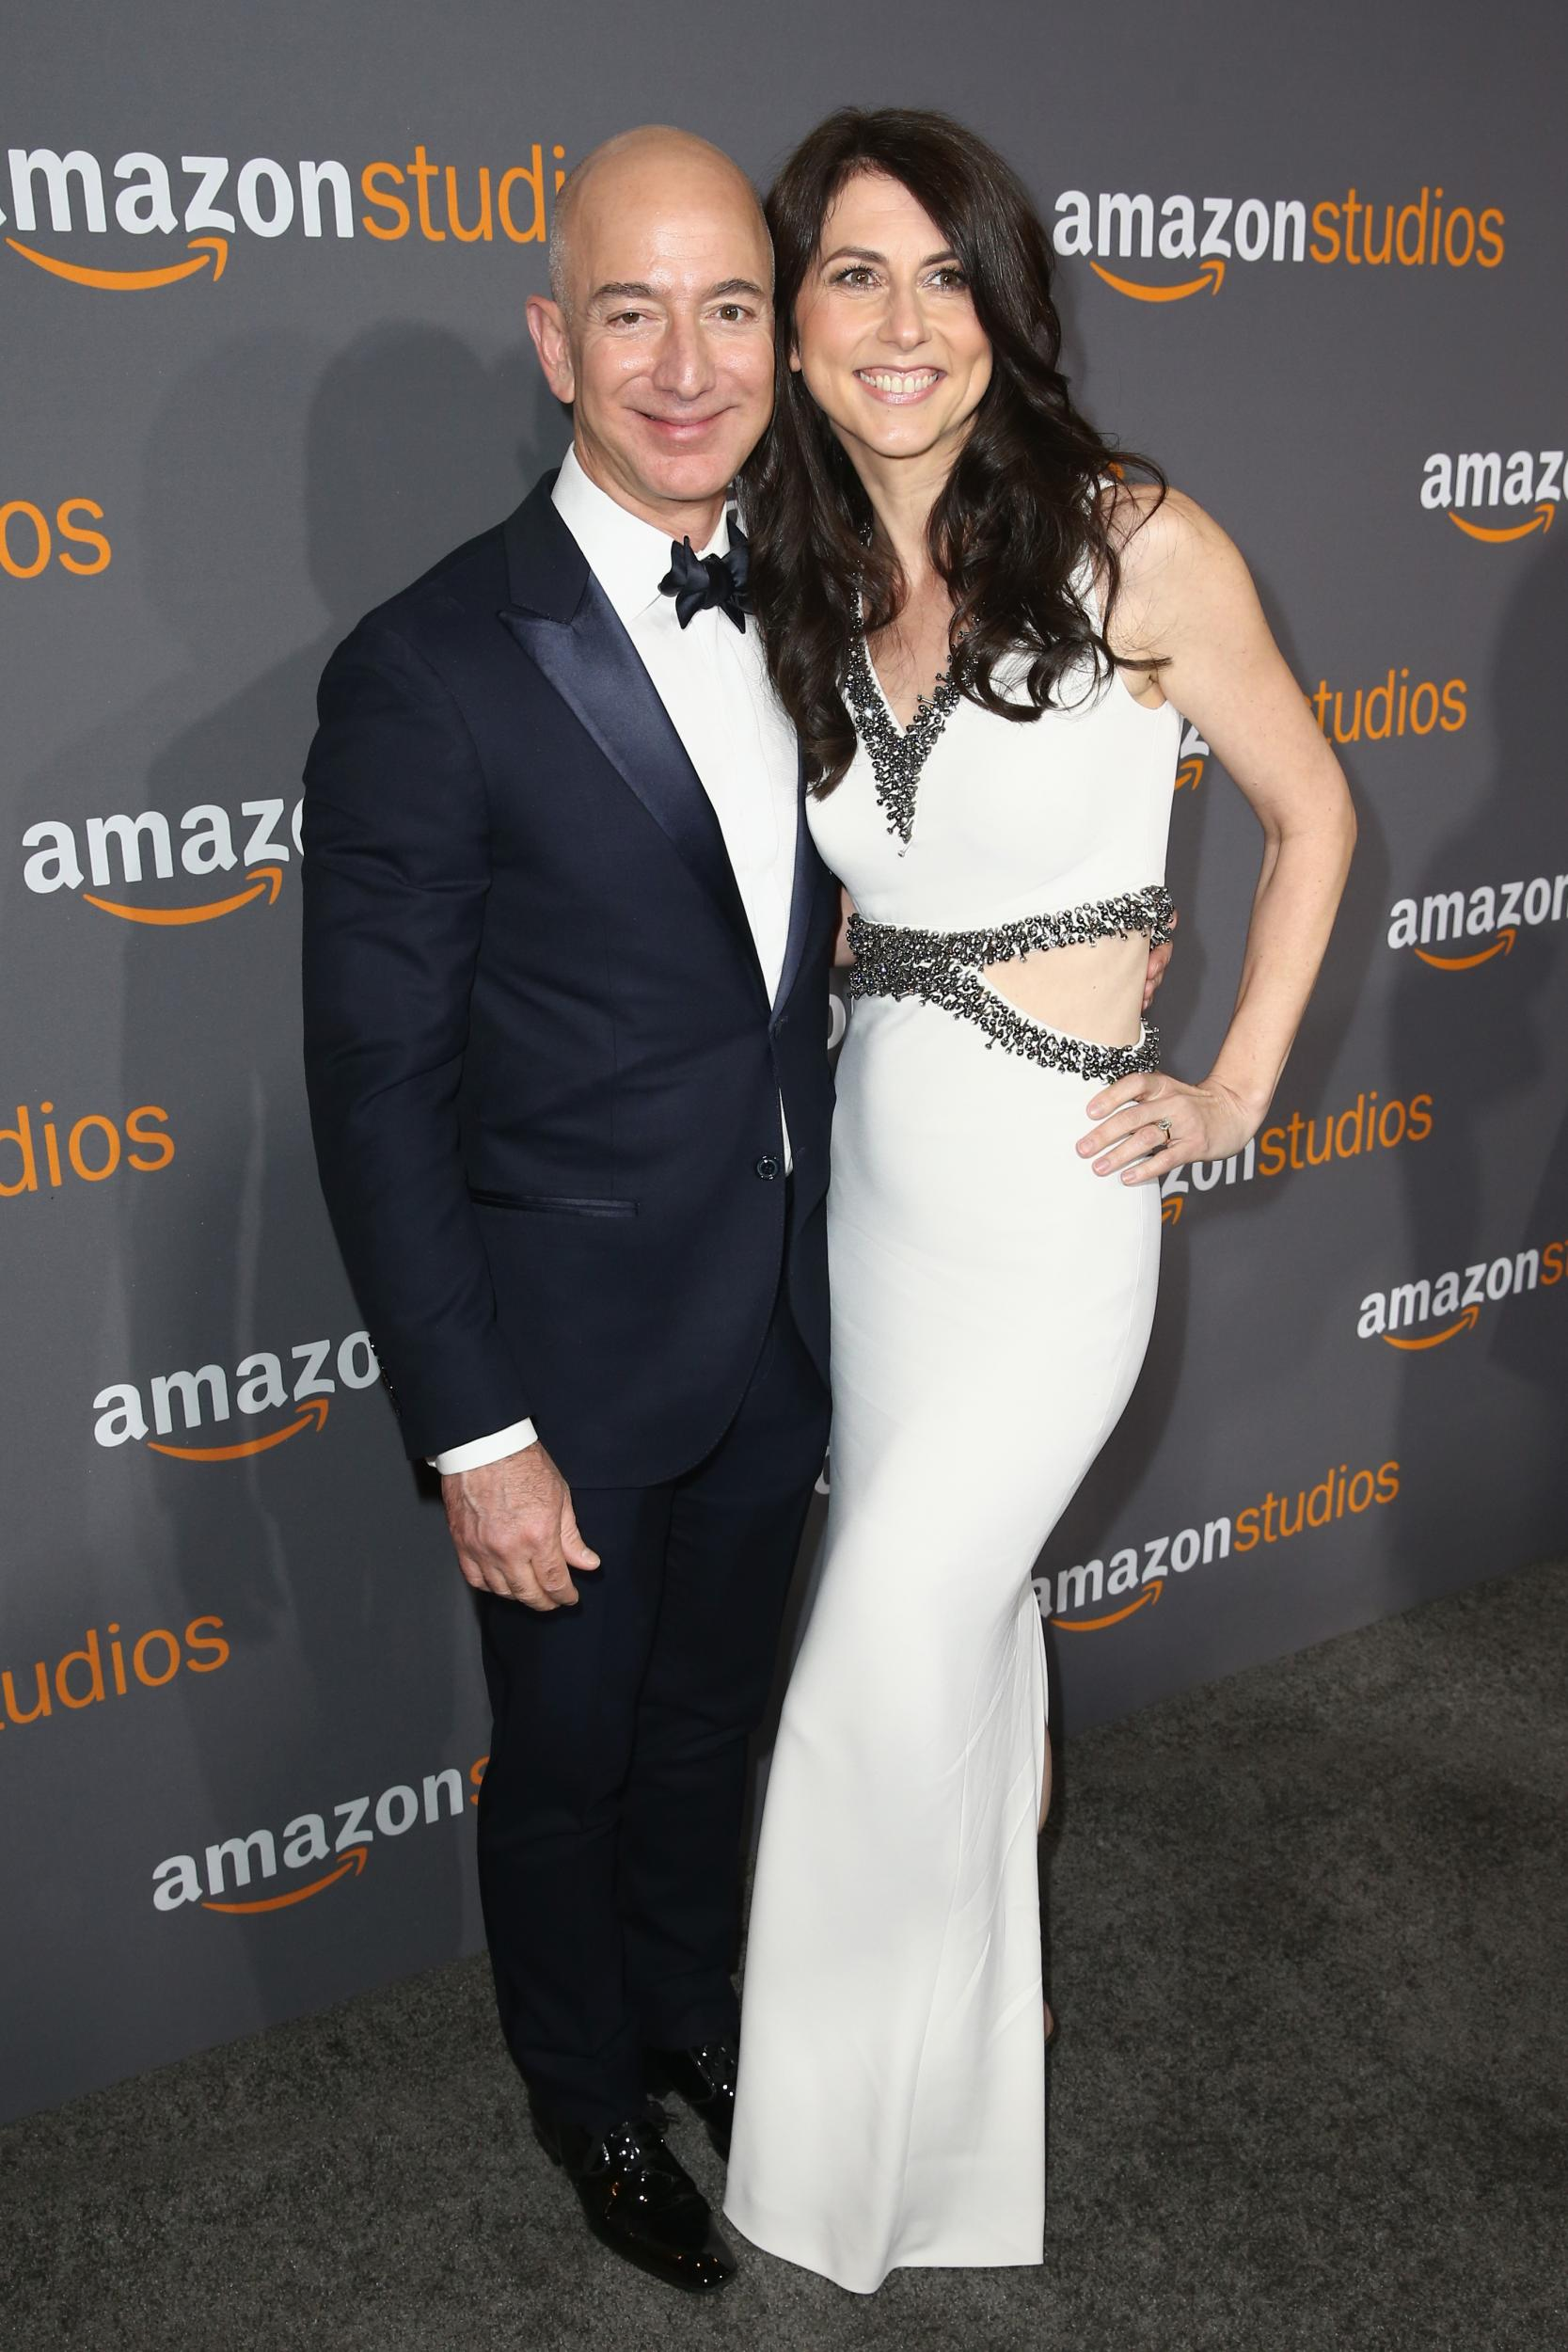 mackenzie-bezos-donates-1-7-billion-to-racial-equality-other-causes